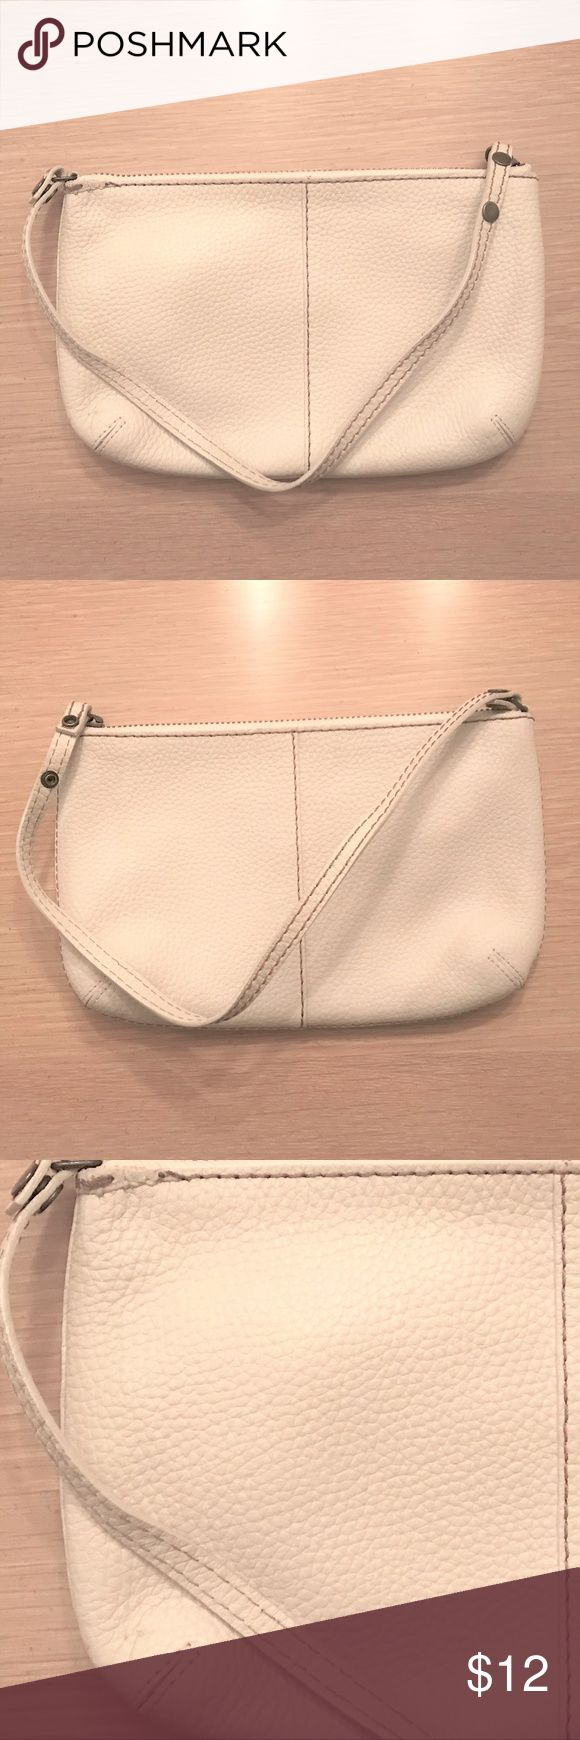 GAP Off-White Zippered Handbag This is an off-white handbag by GAP. It has a zipper to close at the top, opened by pulling the bag's strap. The inside has a zippered pocket and white fabric with black polka dots. It is in mint condition except for four very small pink spots inside, see last photo. GAP Bags Clutches & Wristlets